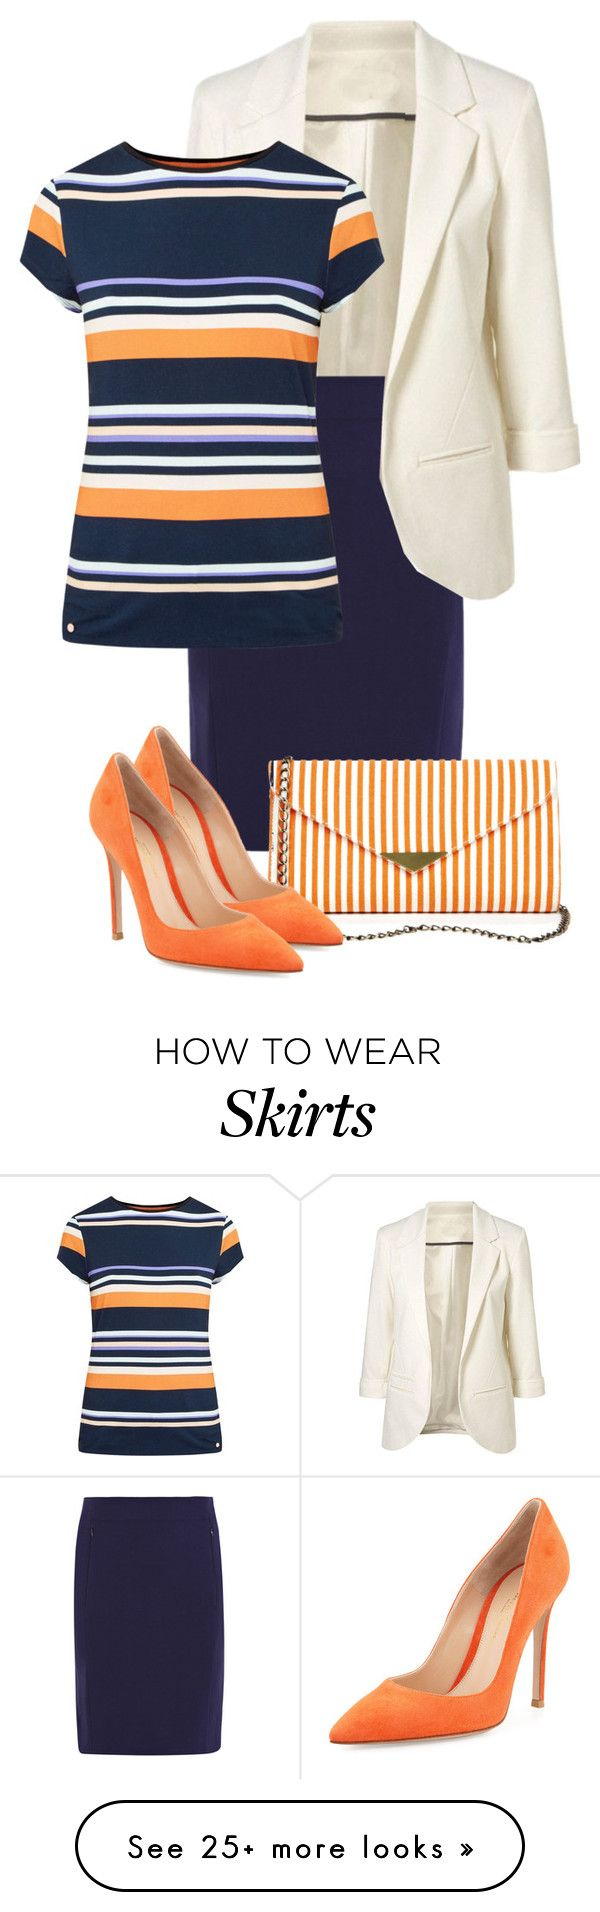 """""""Skirt & Stripes"""" by sagramora on Polyvore featuring Diane Von Furstenberg, Ted Baker, Sole Society and Gianvito Rossi"""